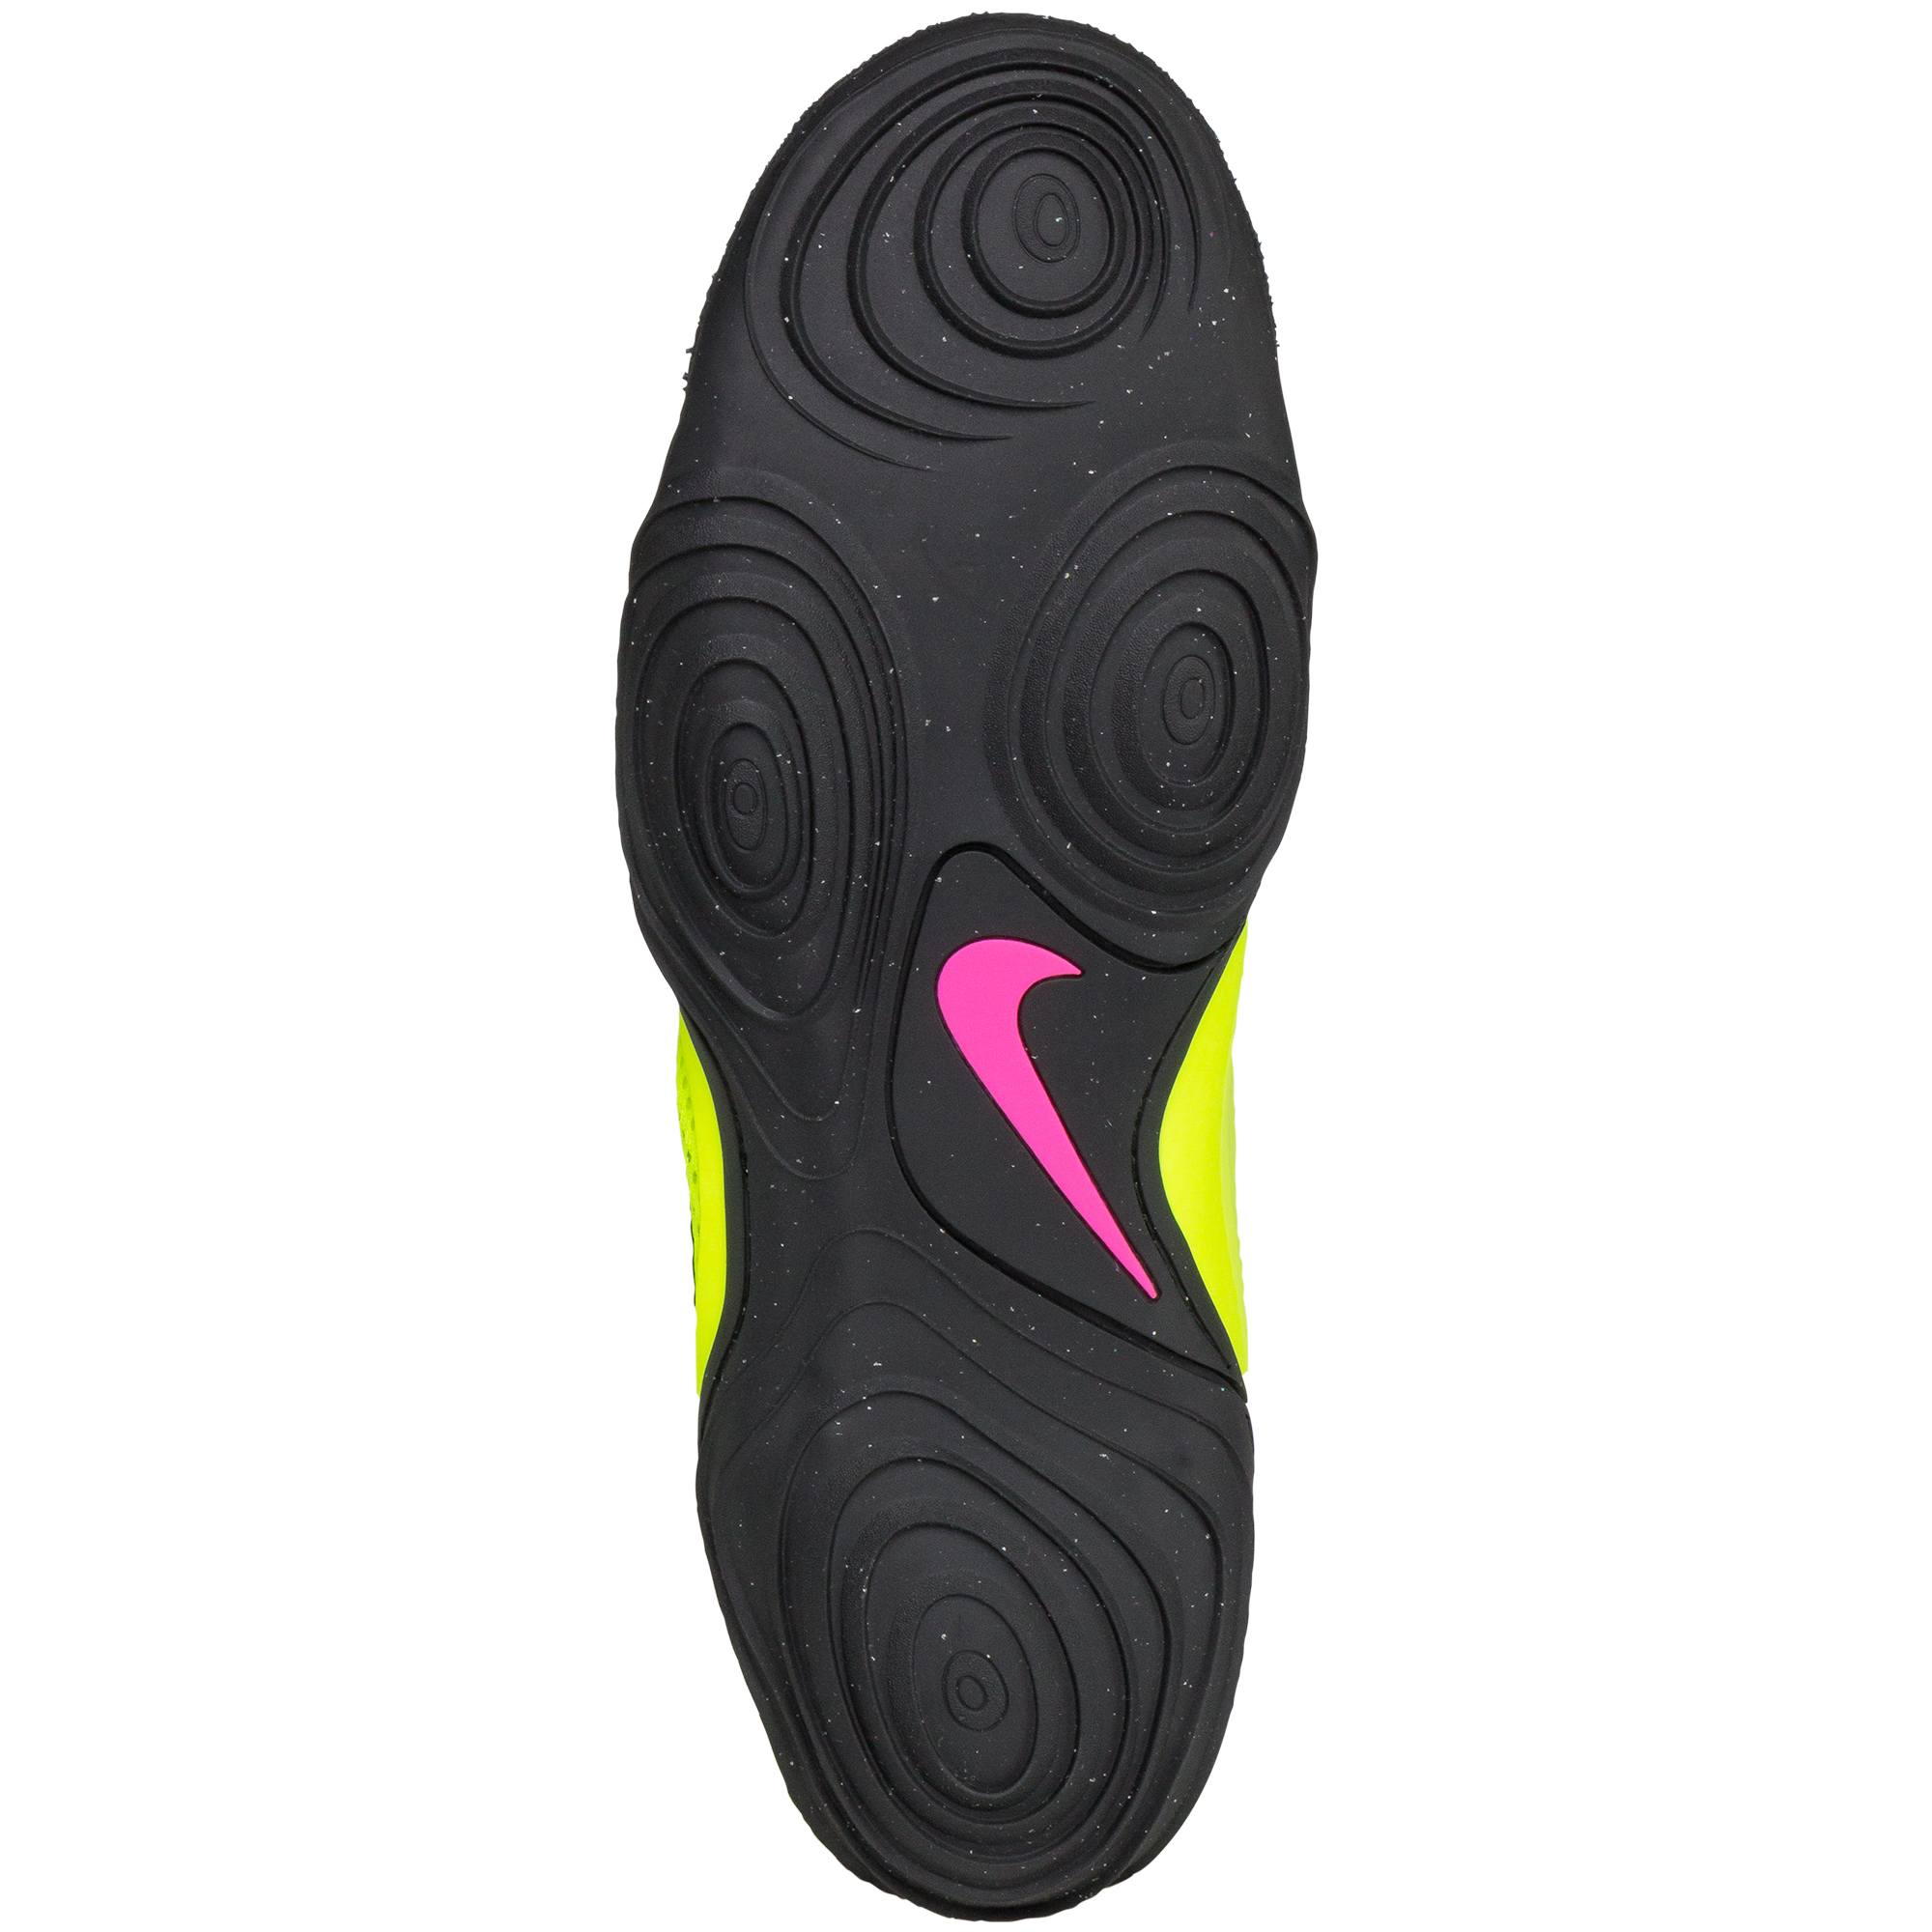 934f901bdbd Nike Hypersweep Unlimited Yellow Hot Pink Black mainNike Hypersweep  Unlimited Yellow Hot Pink Black insideNike Hypersweep Unlimited Yellow Hot  Pink Black ...